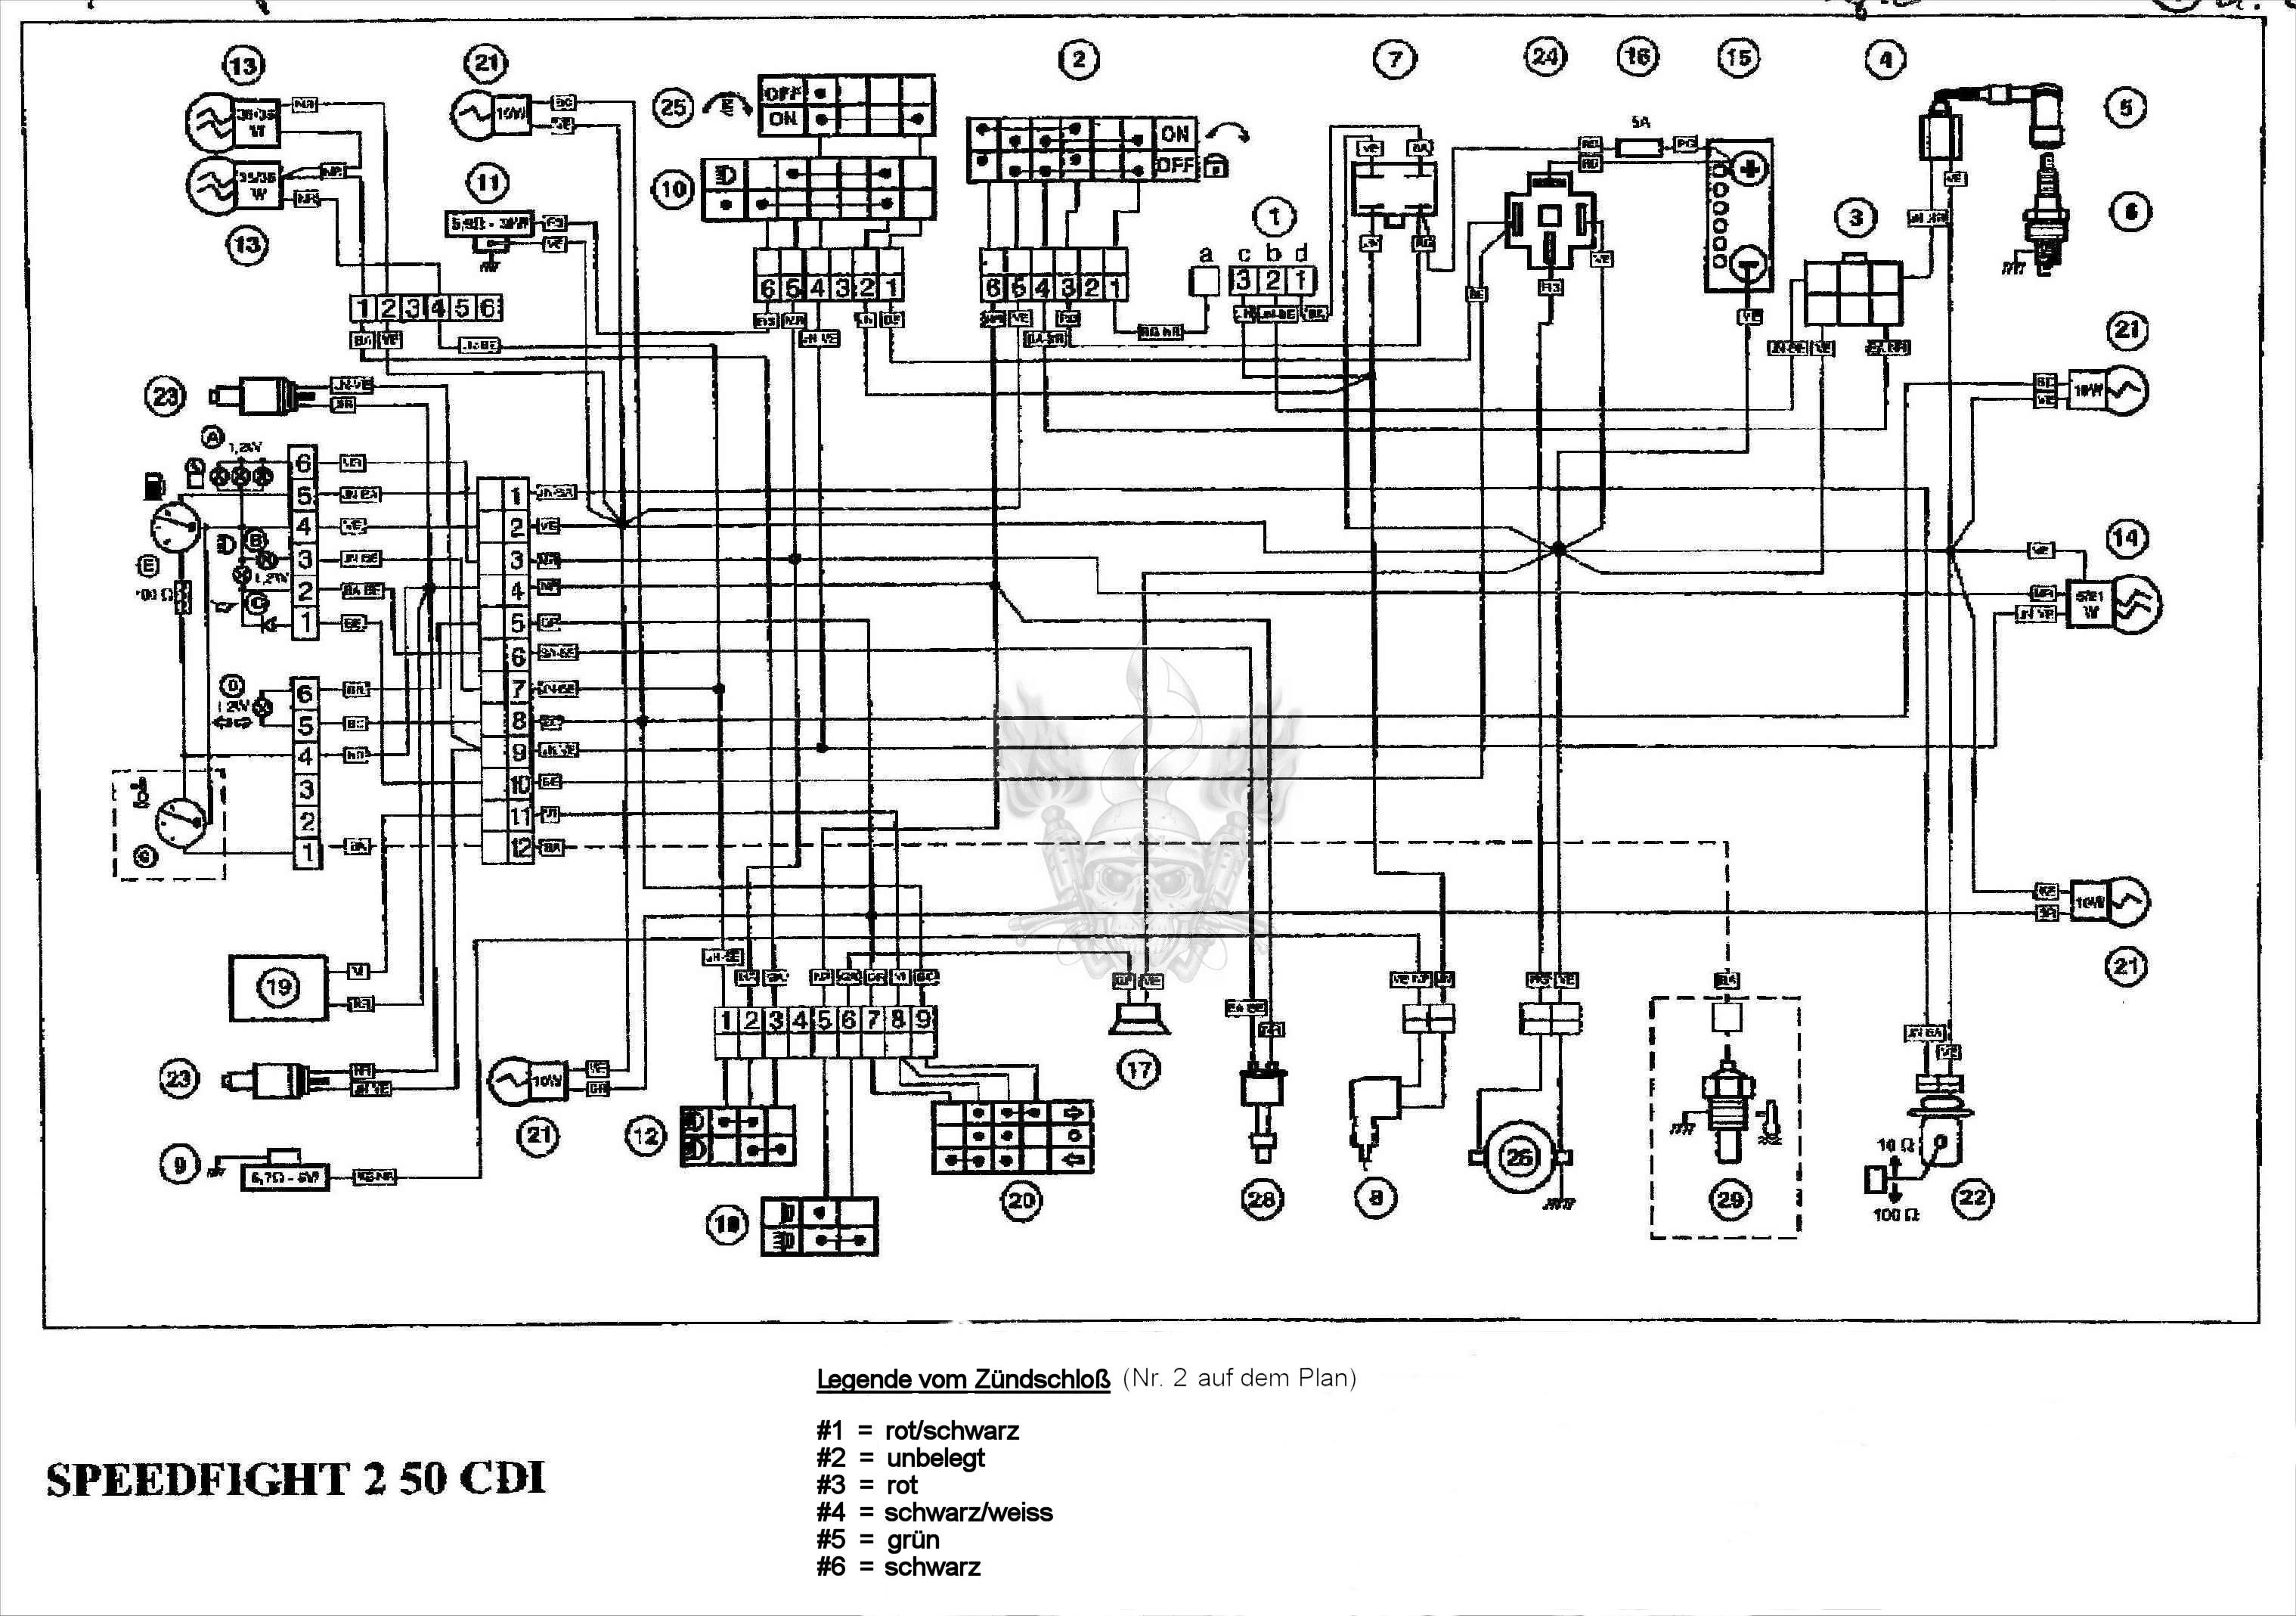 49cc Engine Wiring Diagram Schematic Example Electrical Mini Moto Jonway Gy6 Scooter 150cc Bike